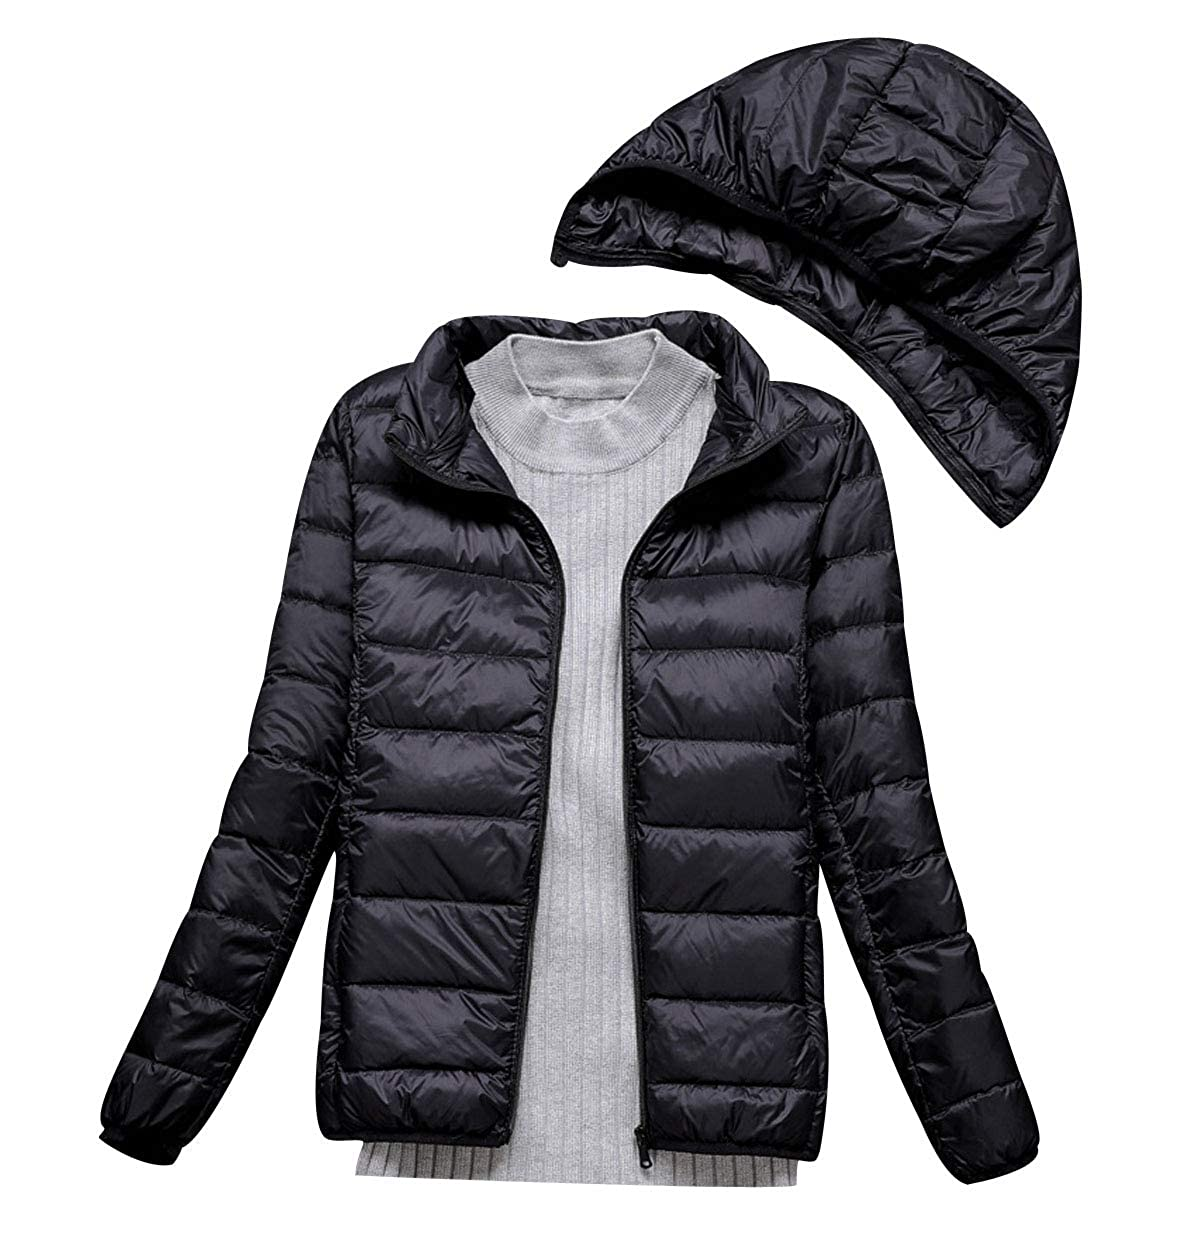 3a186c6cf Lightweight Down Jacket Women with Movable Hood Womens Down Coats Women'S  Ultra Light Packable Down Jacket Down Filled Coat Parka Quilted Padded ...